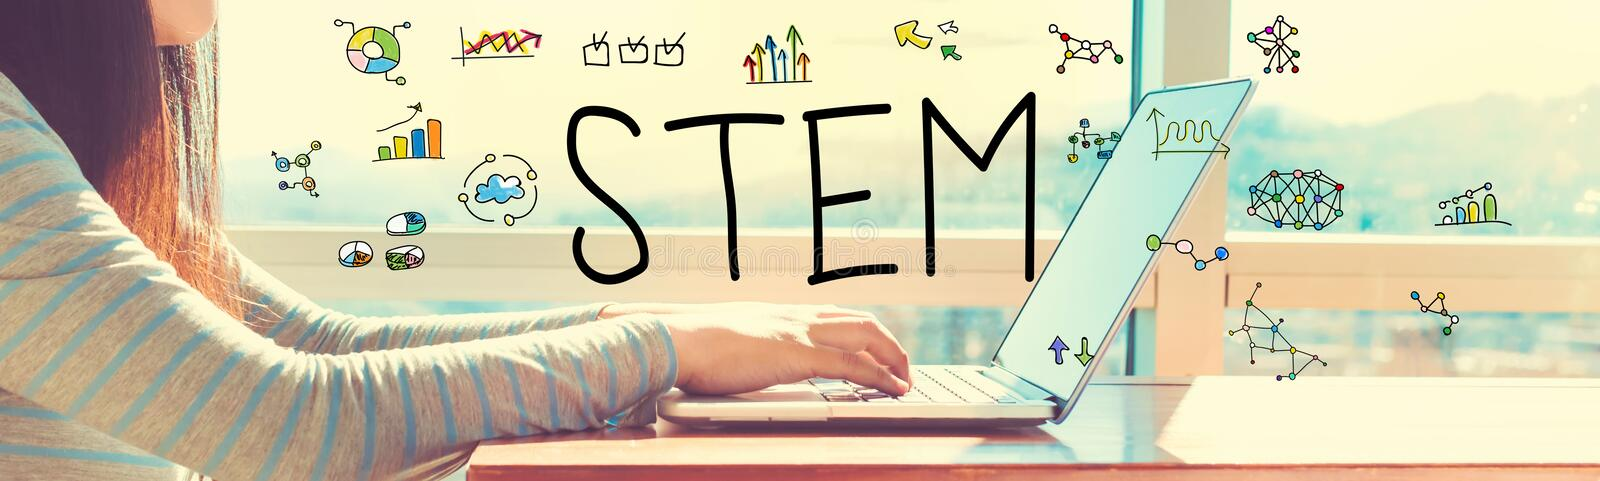 STEM with woman working on a laptop. In brightly lit room royalty free stock photography